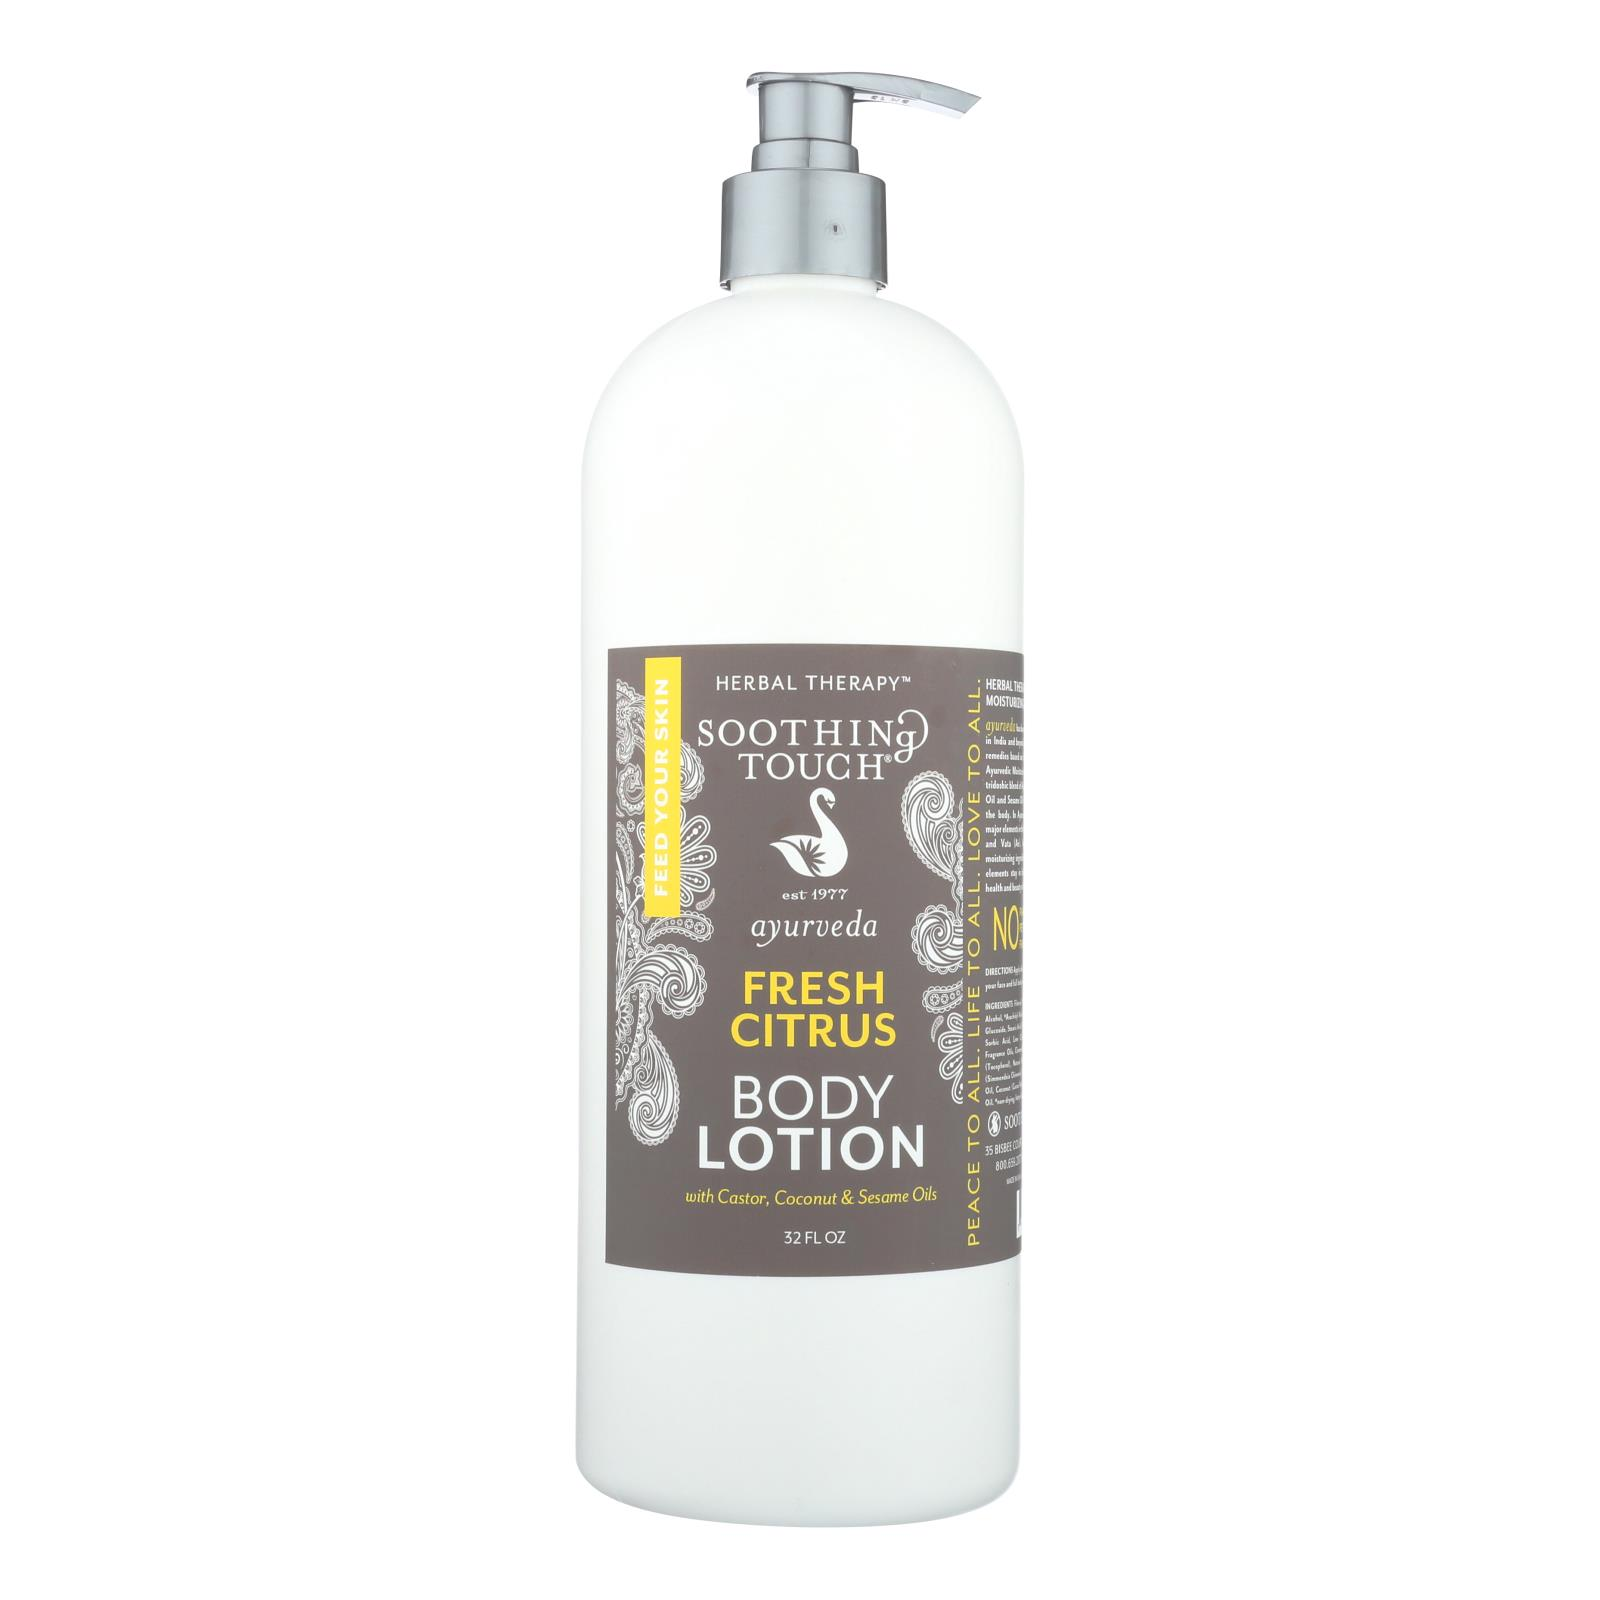 Soothing Touch - Fresh Citrus Body Lotion - 32 FZ